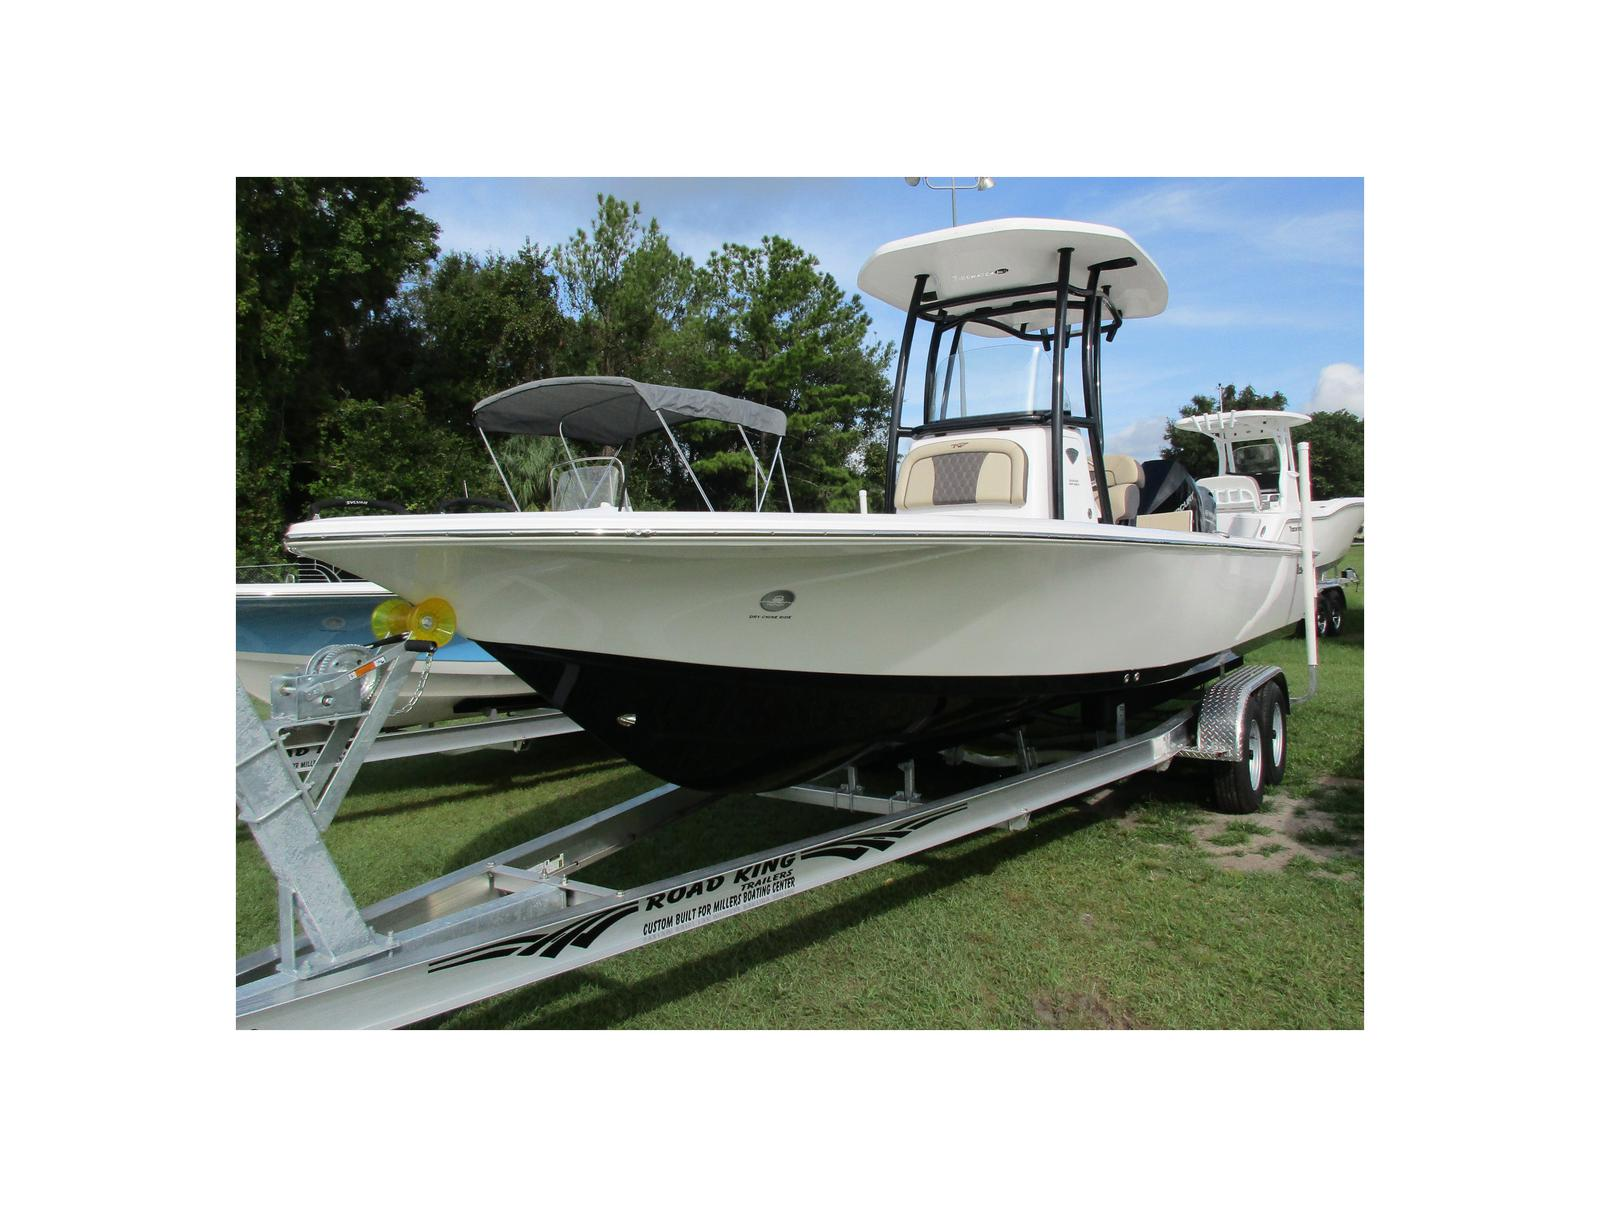 2019 Tidewater Boats 2410 Bay Max for sale in Ocala, FL | Millers Boating  Center (877) 898-1474